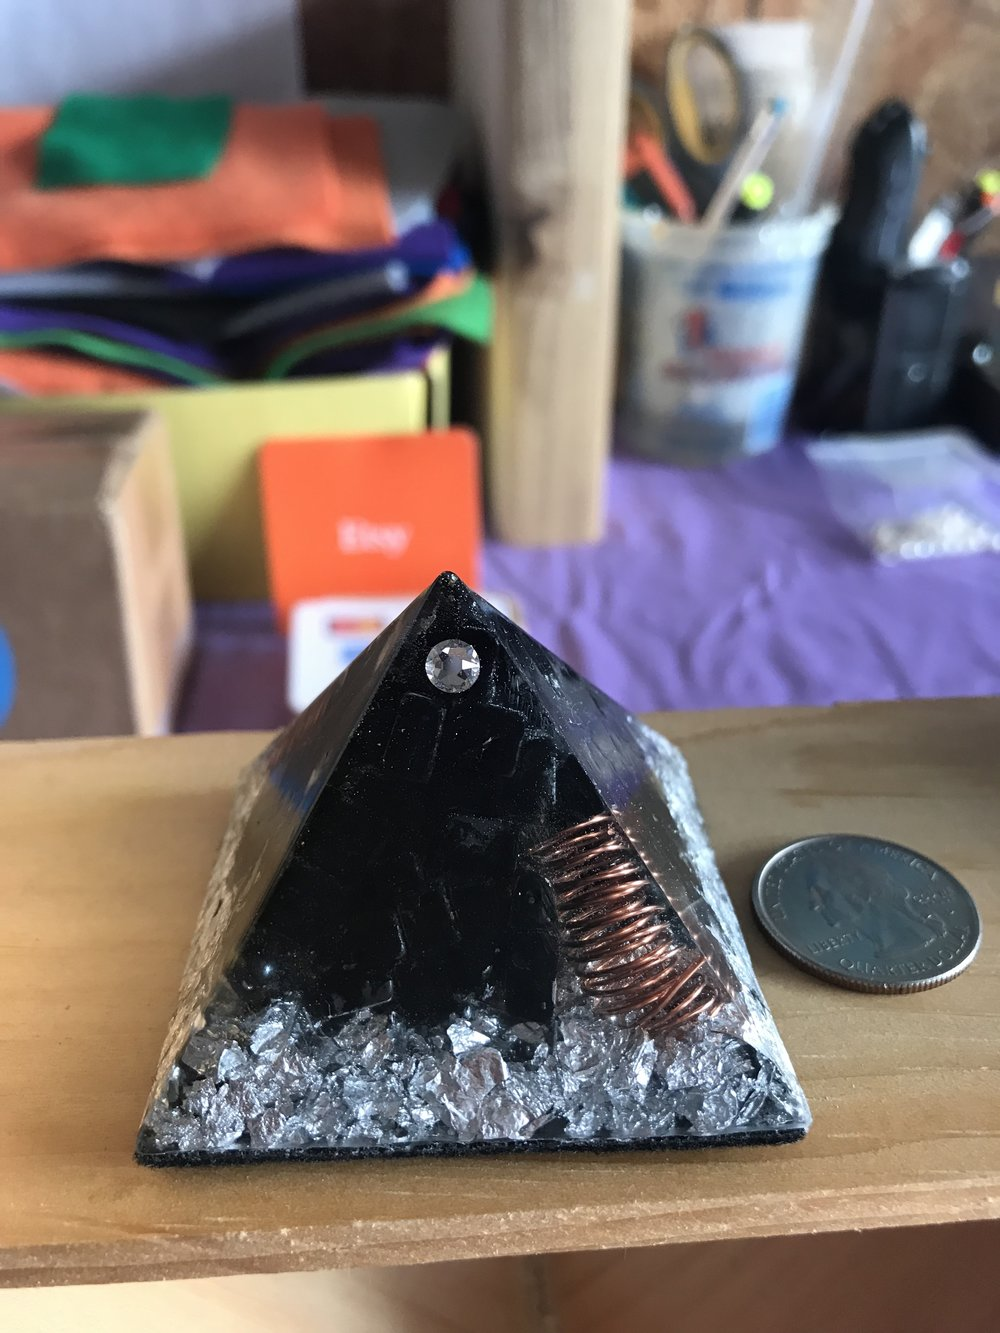 GROUNDING & MENTAL STABILITY ORGONE, ORGONITE PYRAMID